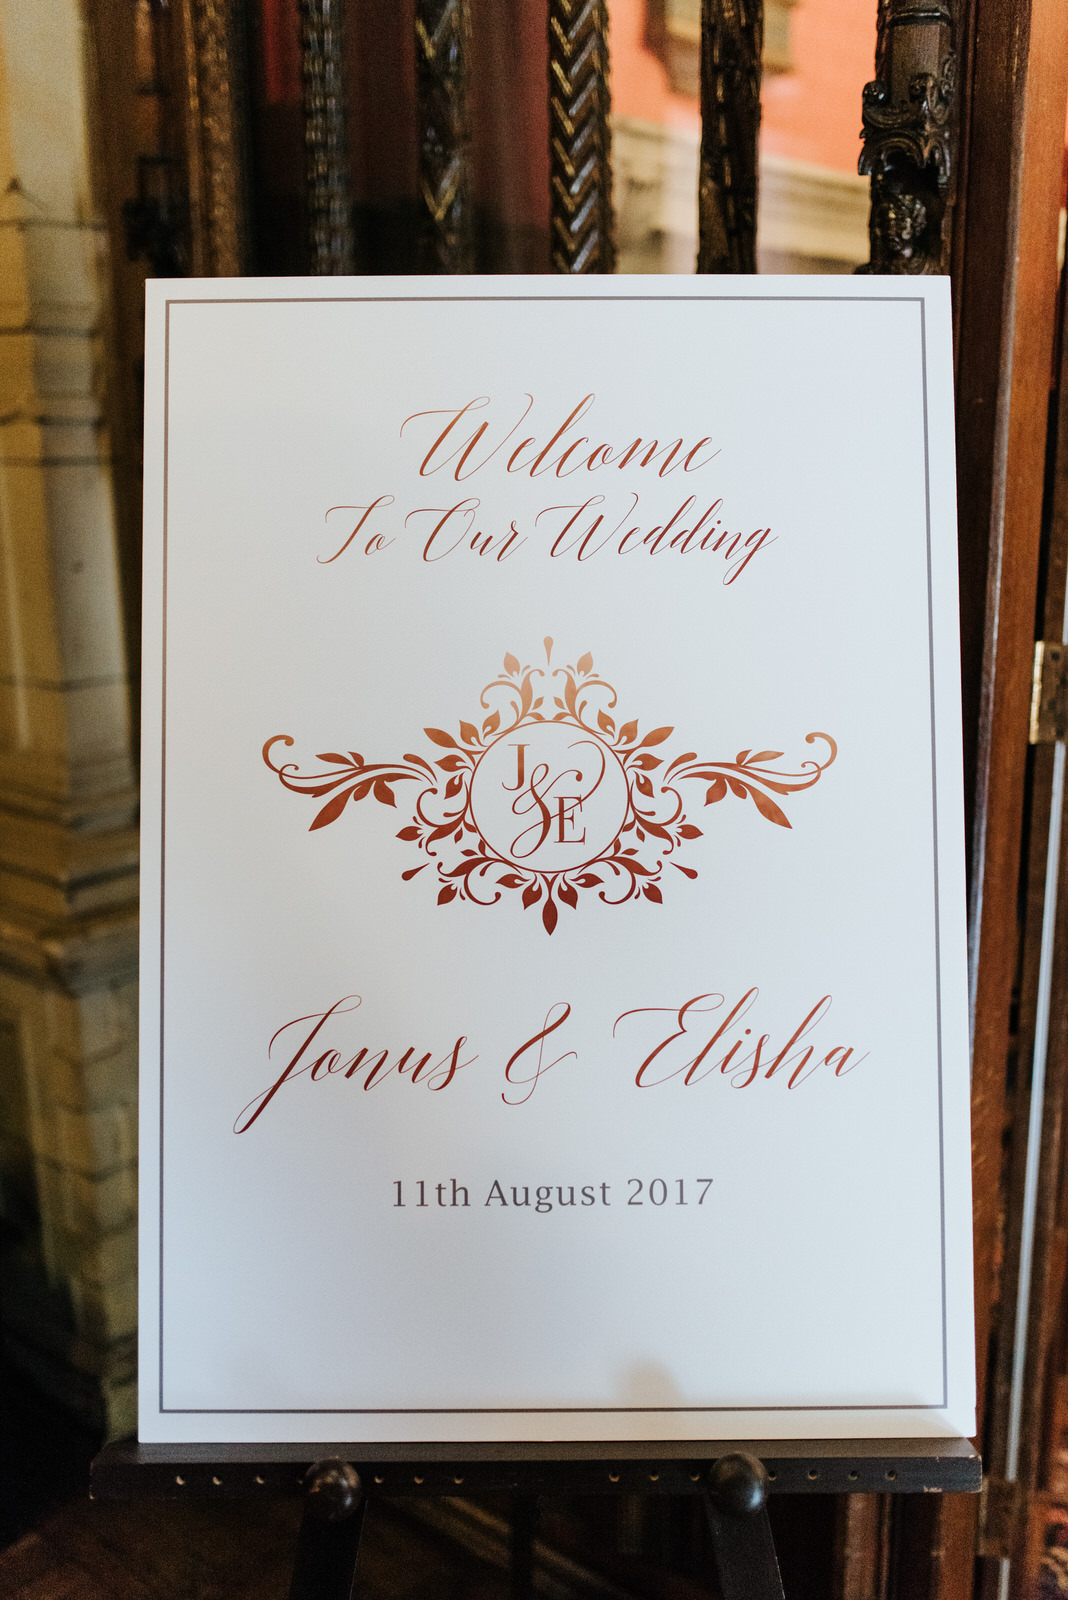 Photograph of wedding details showing the couples' names and the